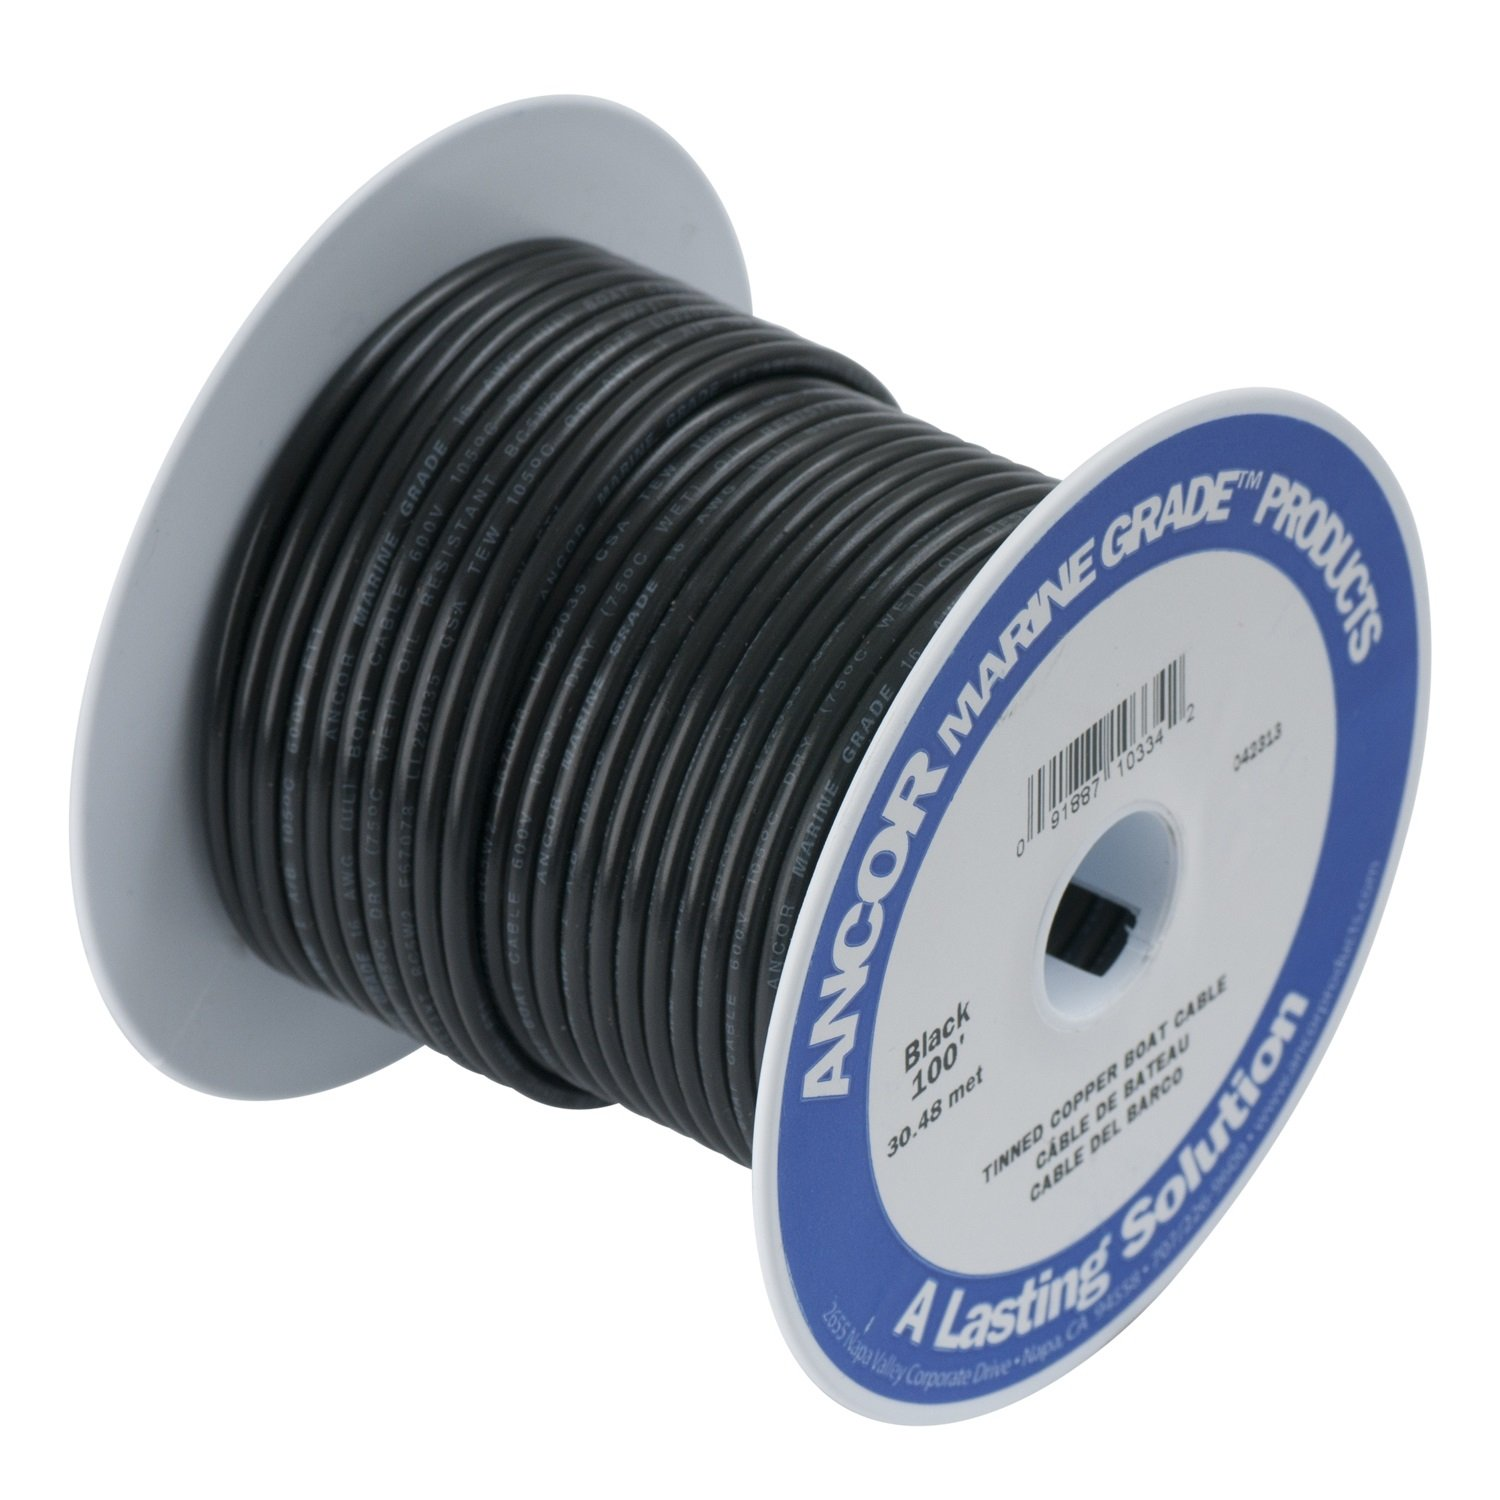 Amazon.com : Ancor Marine Grade Primary Wire and Battery Cable ...